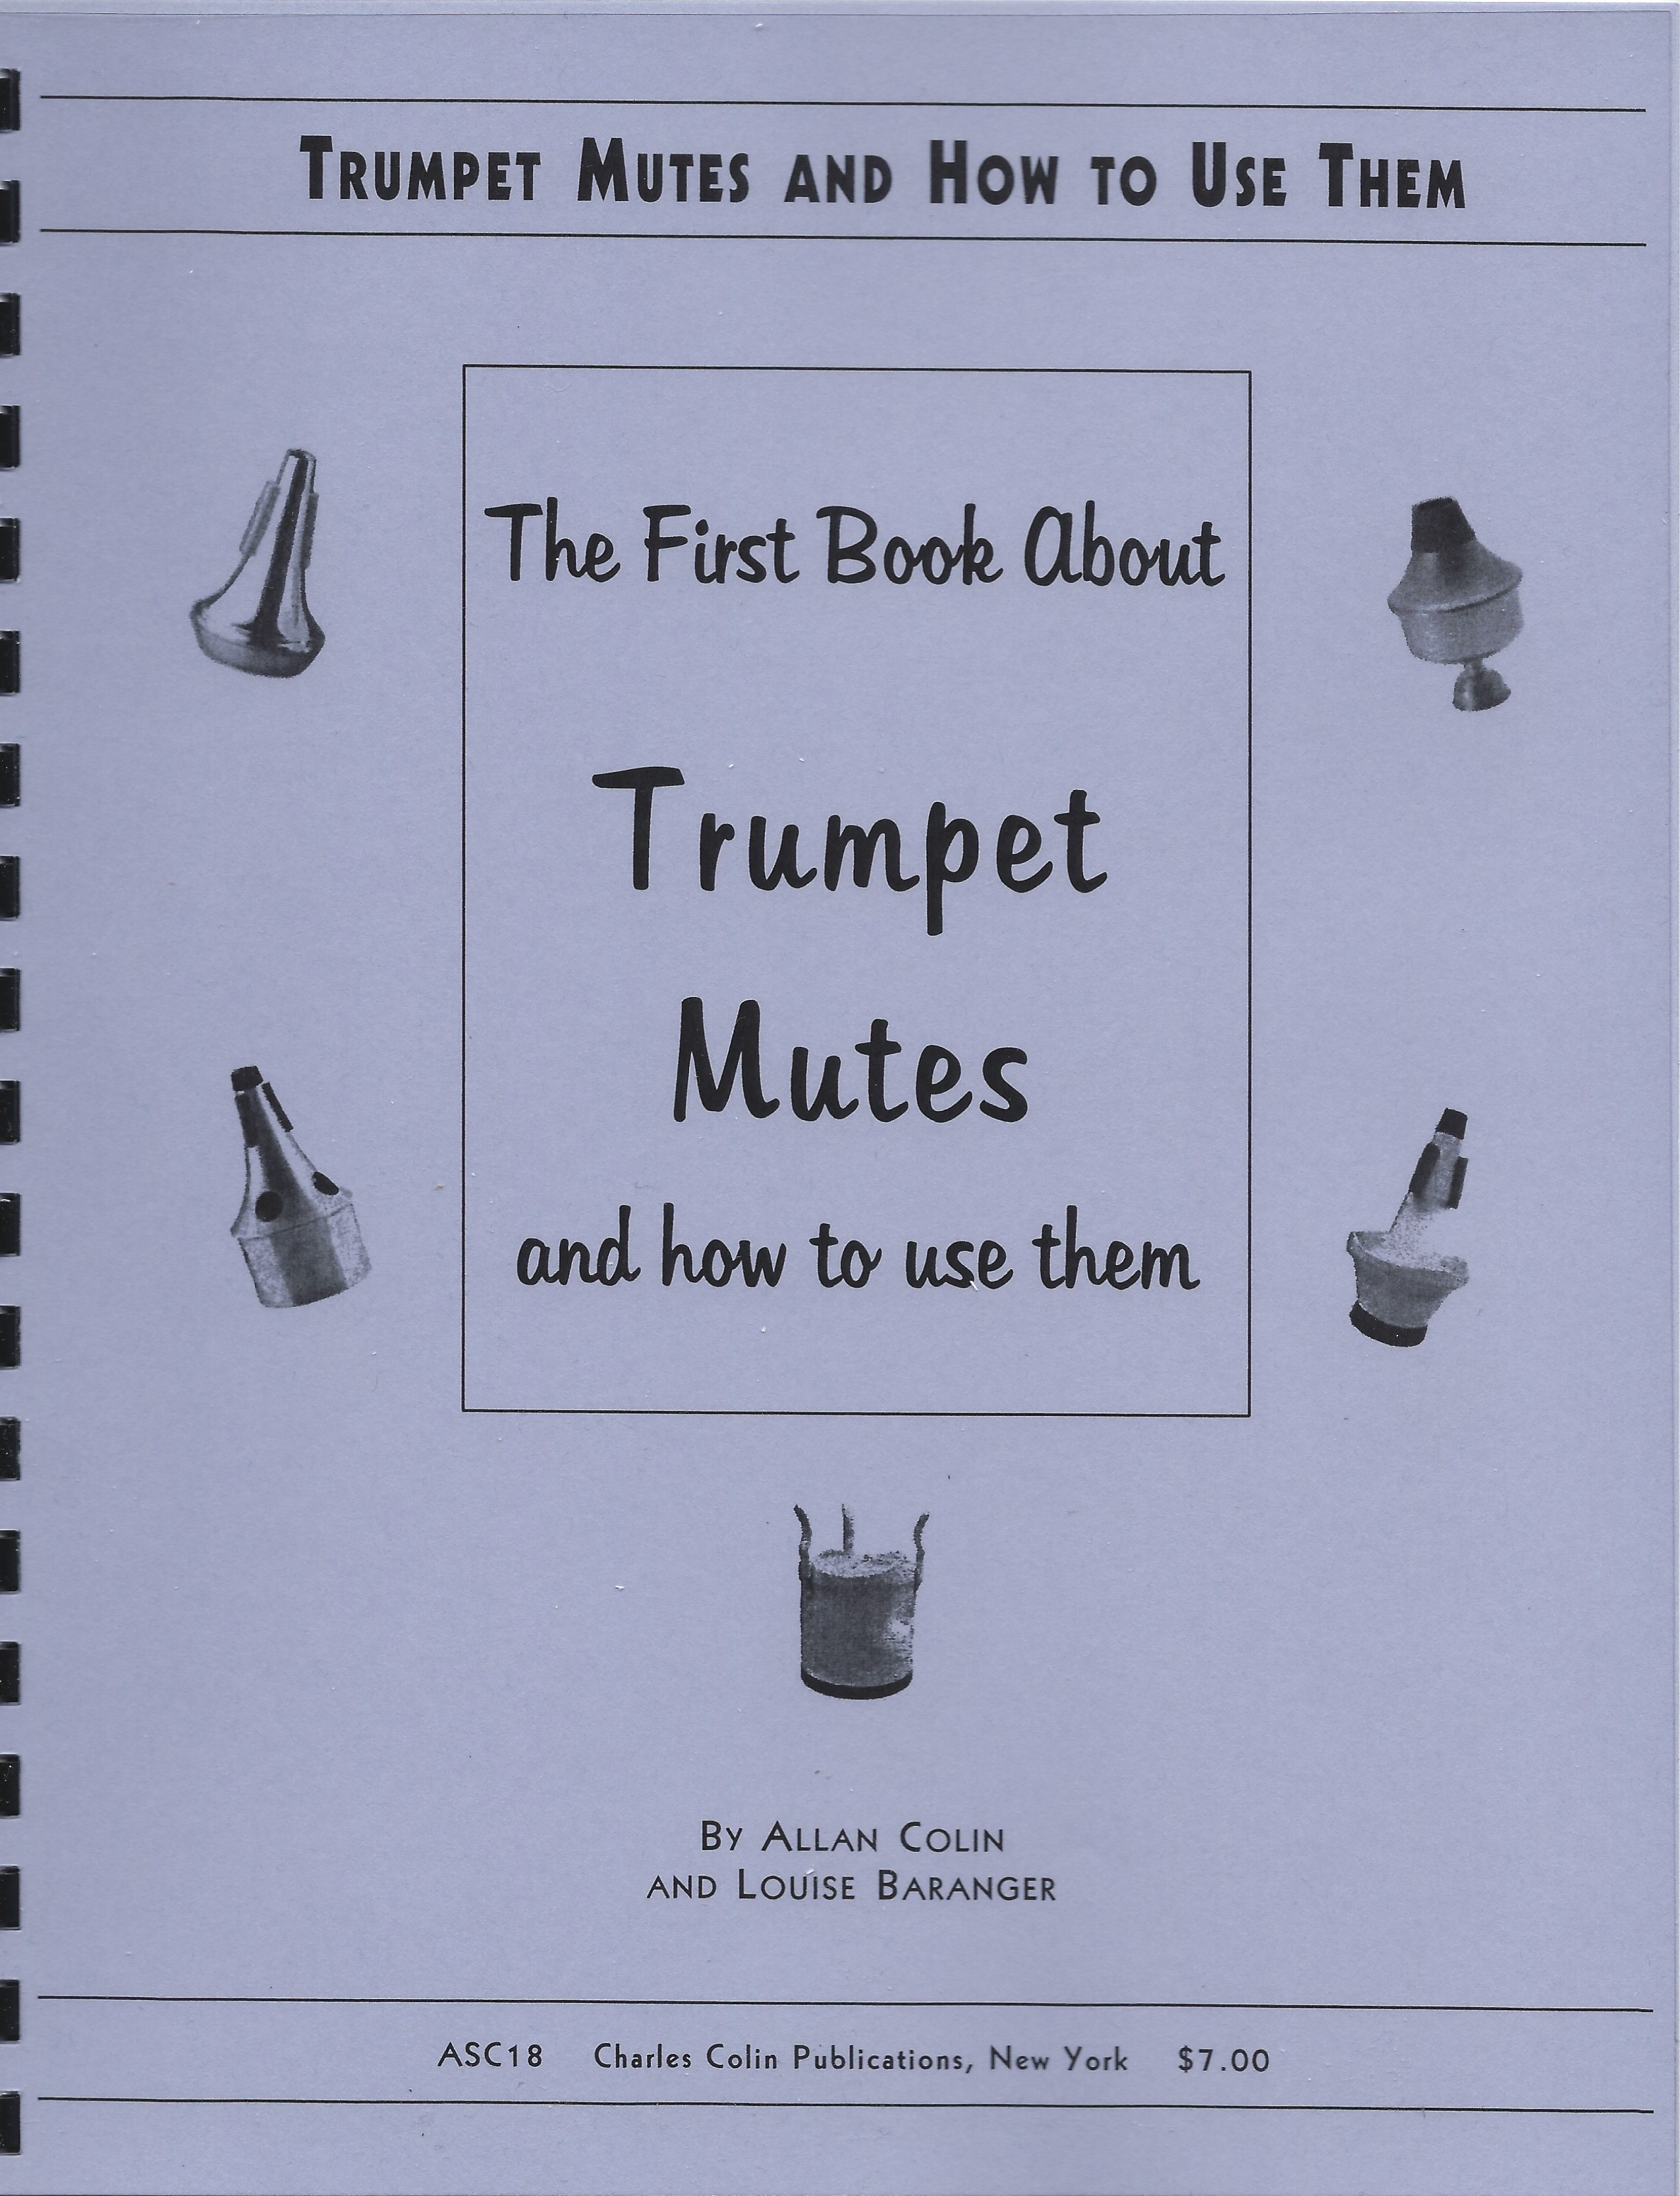 Trumpet Mutes and How to Use Them